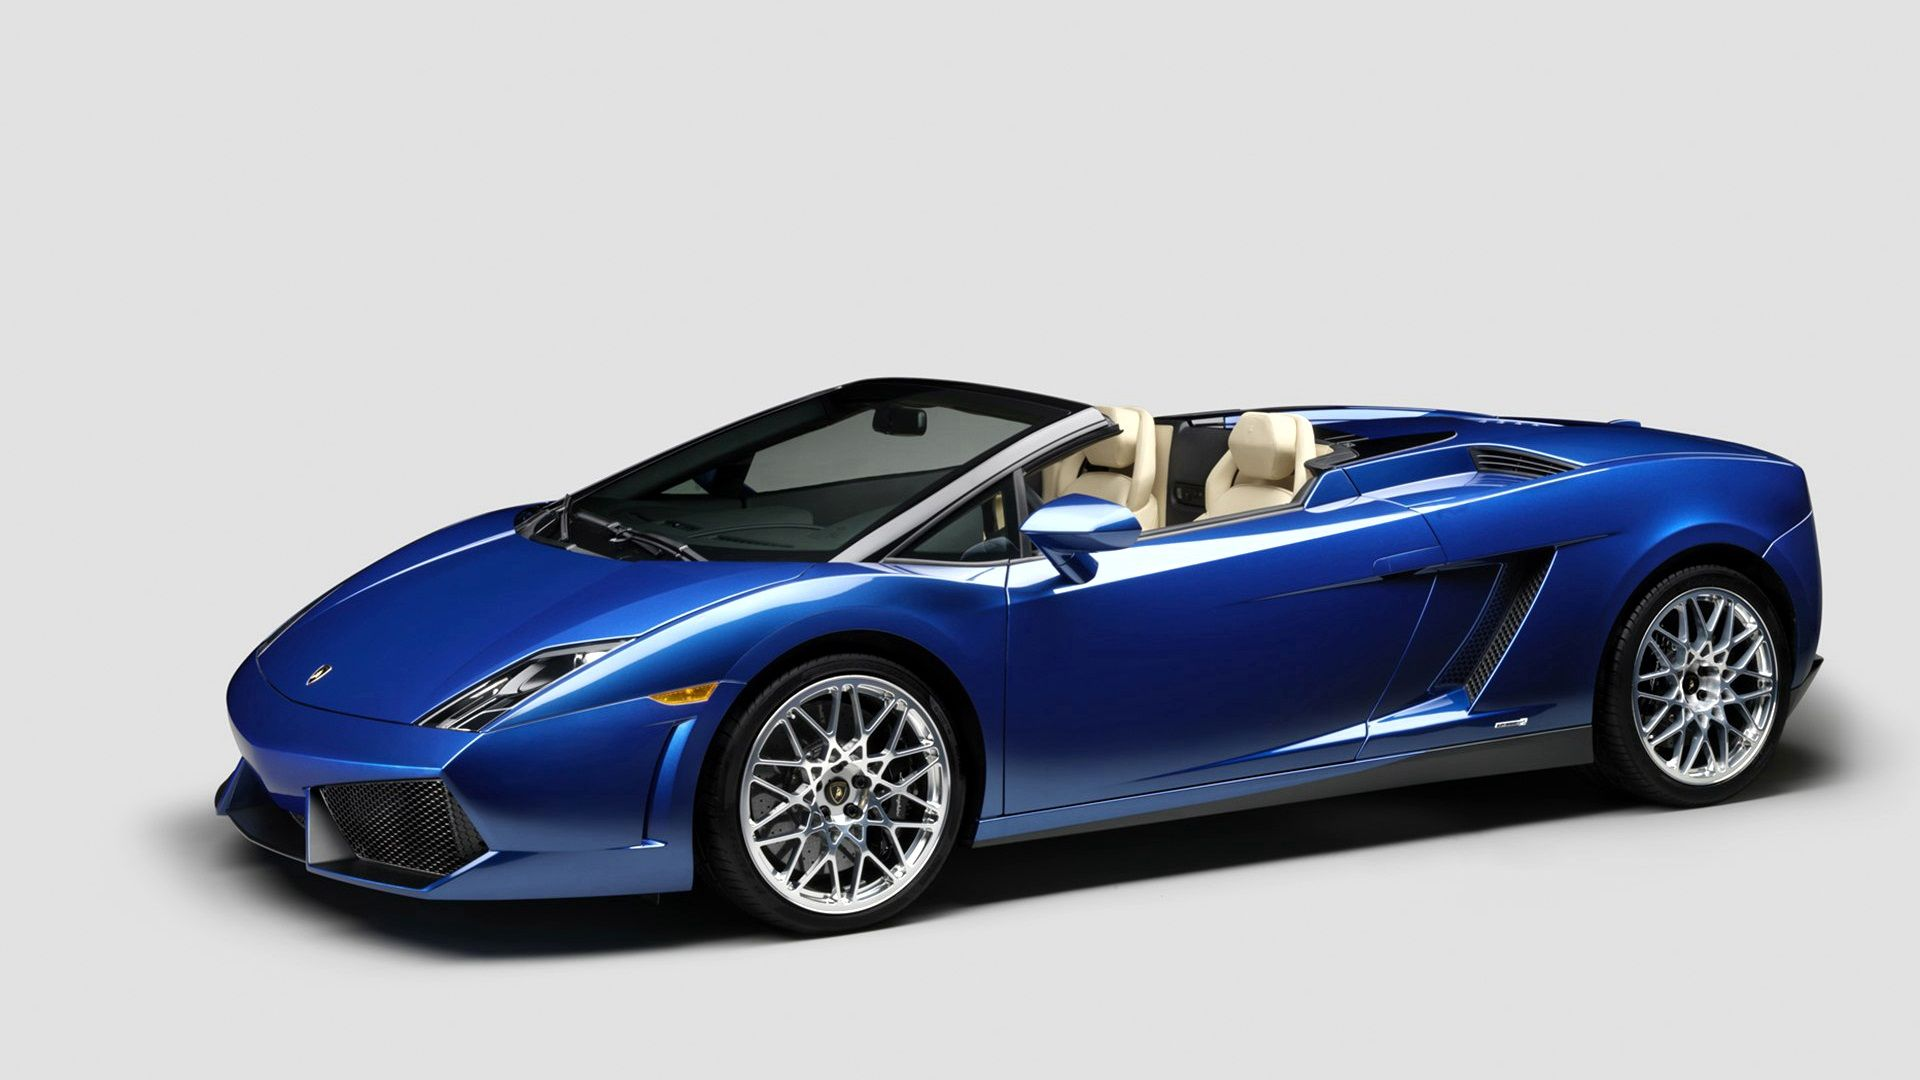 quikdmv - lamborghini. #vehicleregistration #quickdmv #quikdmv